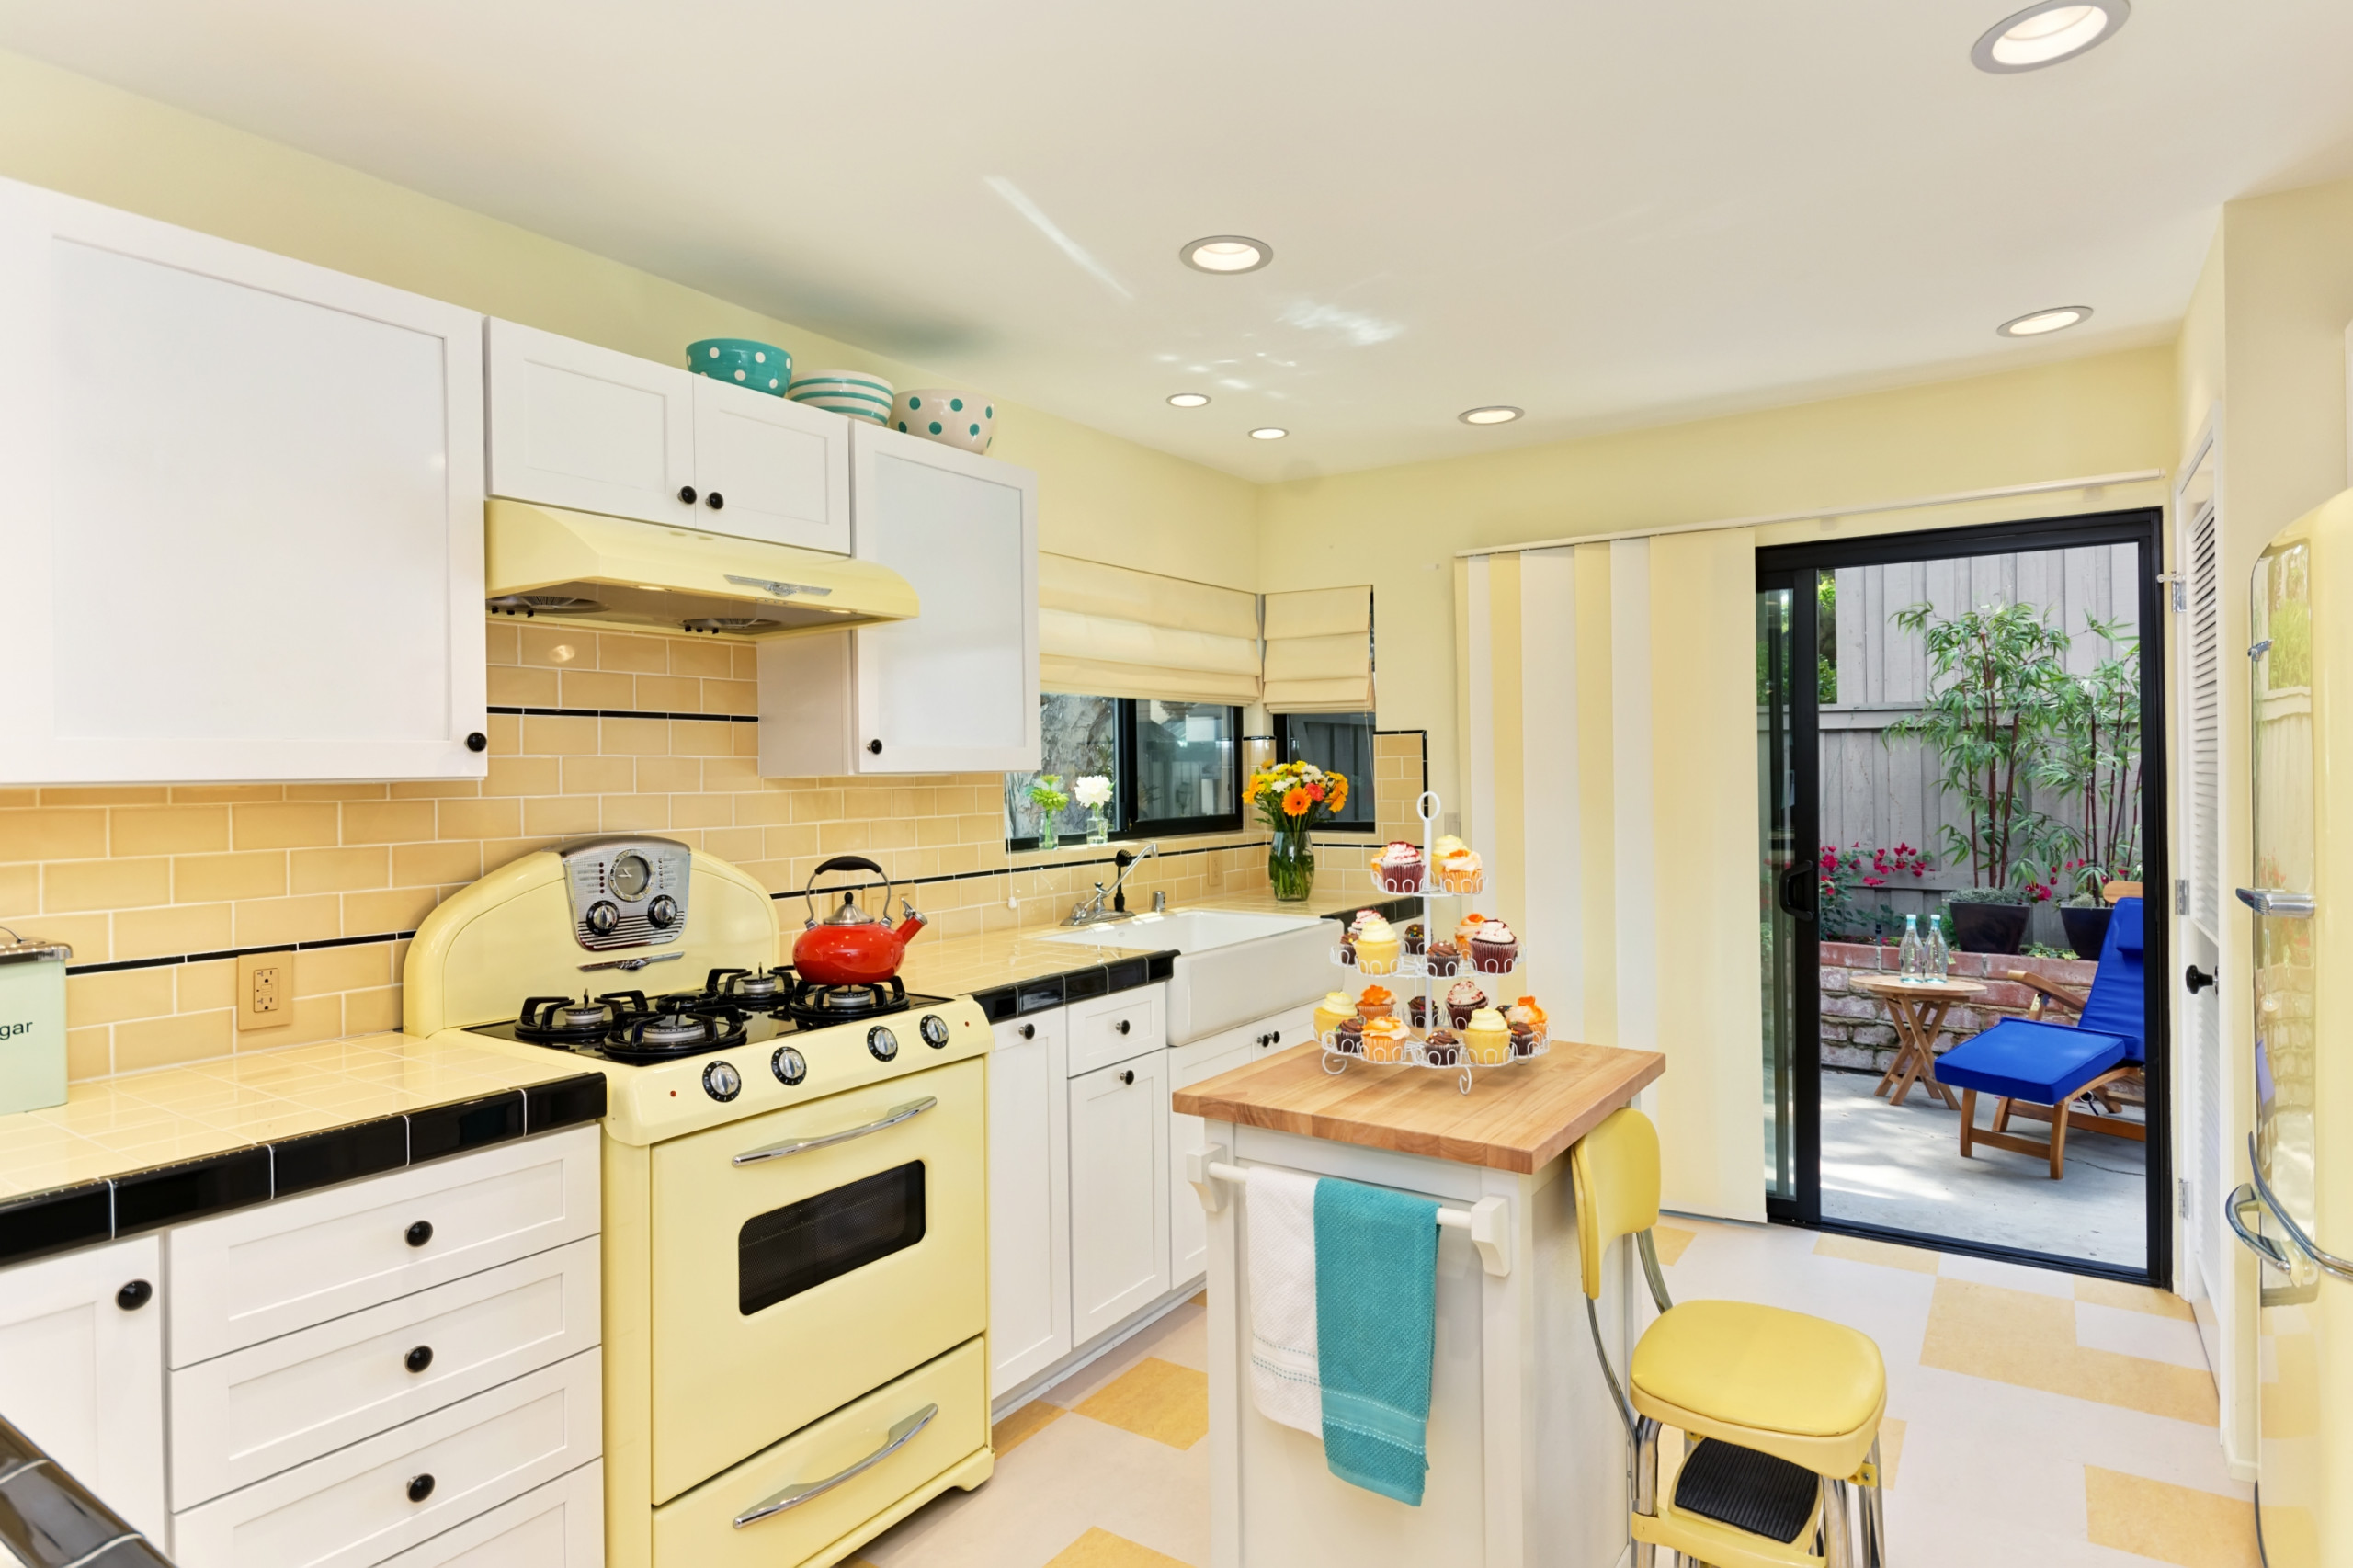 75 Beautiful Yellow Kitchen With Colored Appliances Pictures Ideas December 2020 Houzz